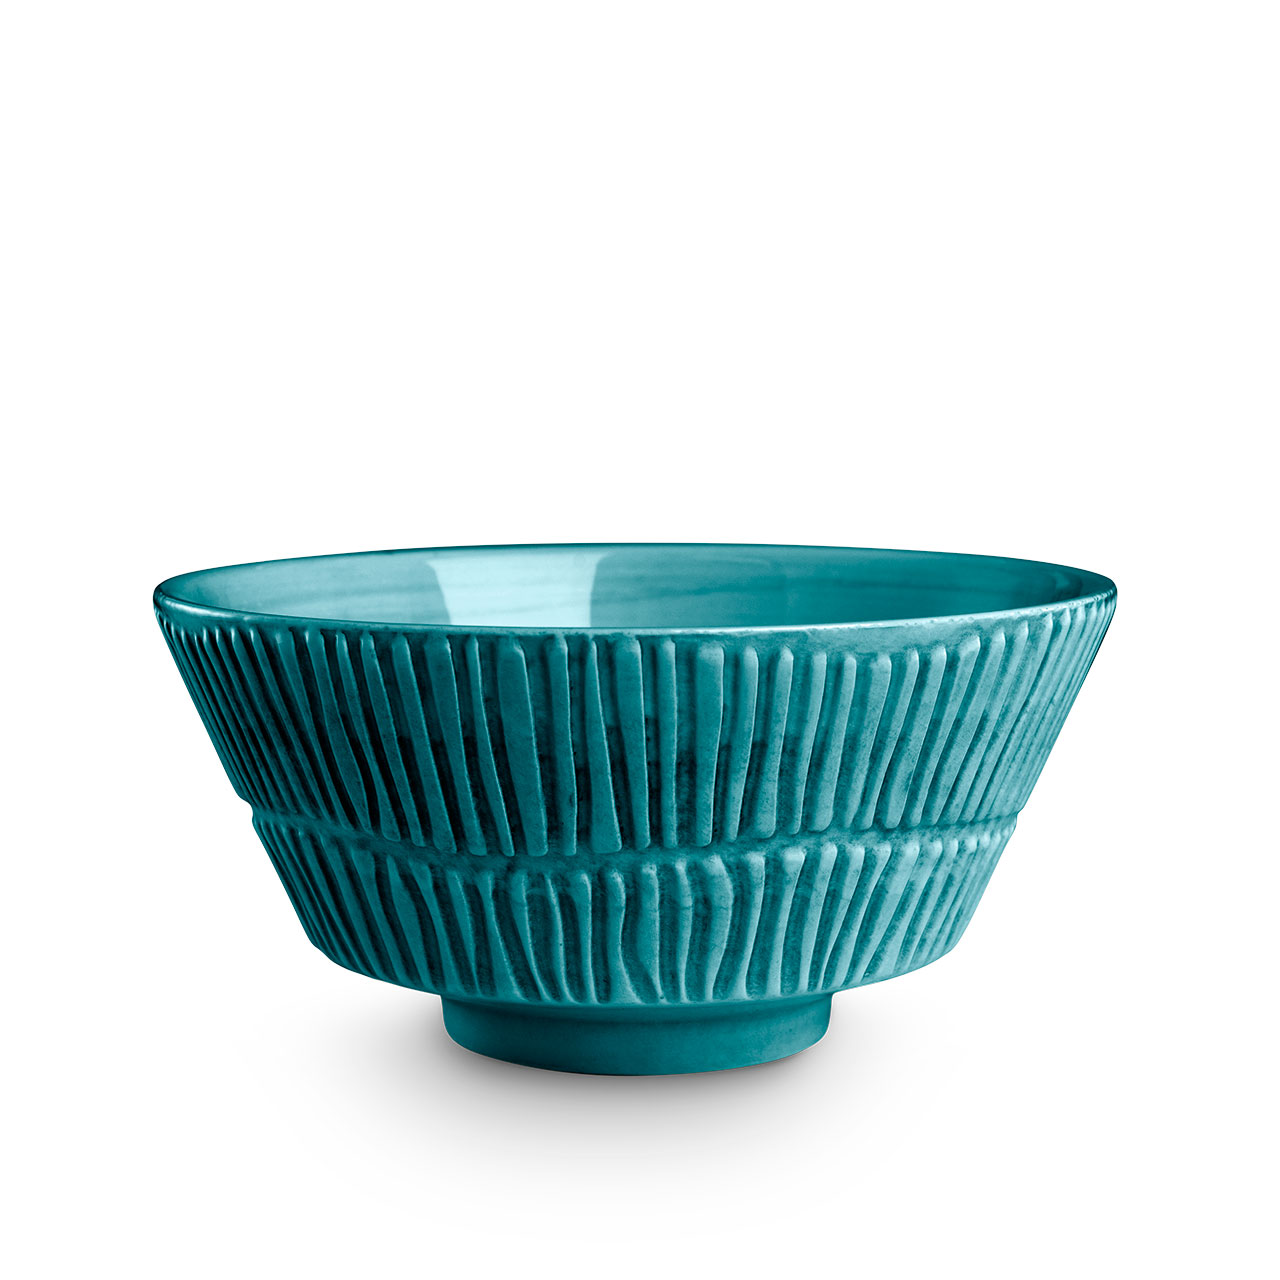 Stripes Ocean bowl. © Mateus Ceramics, 2020.